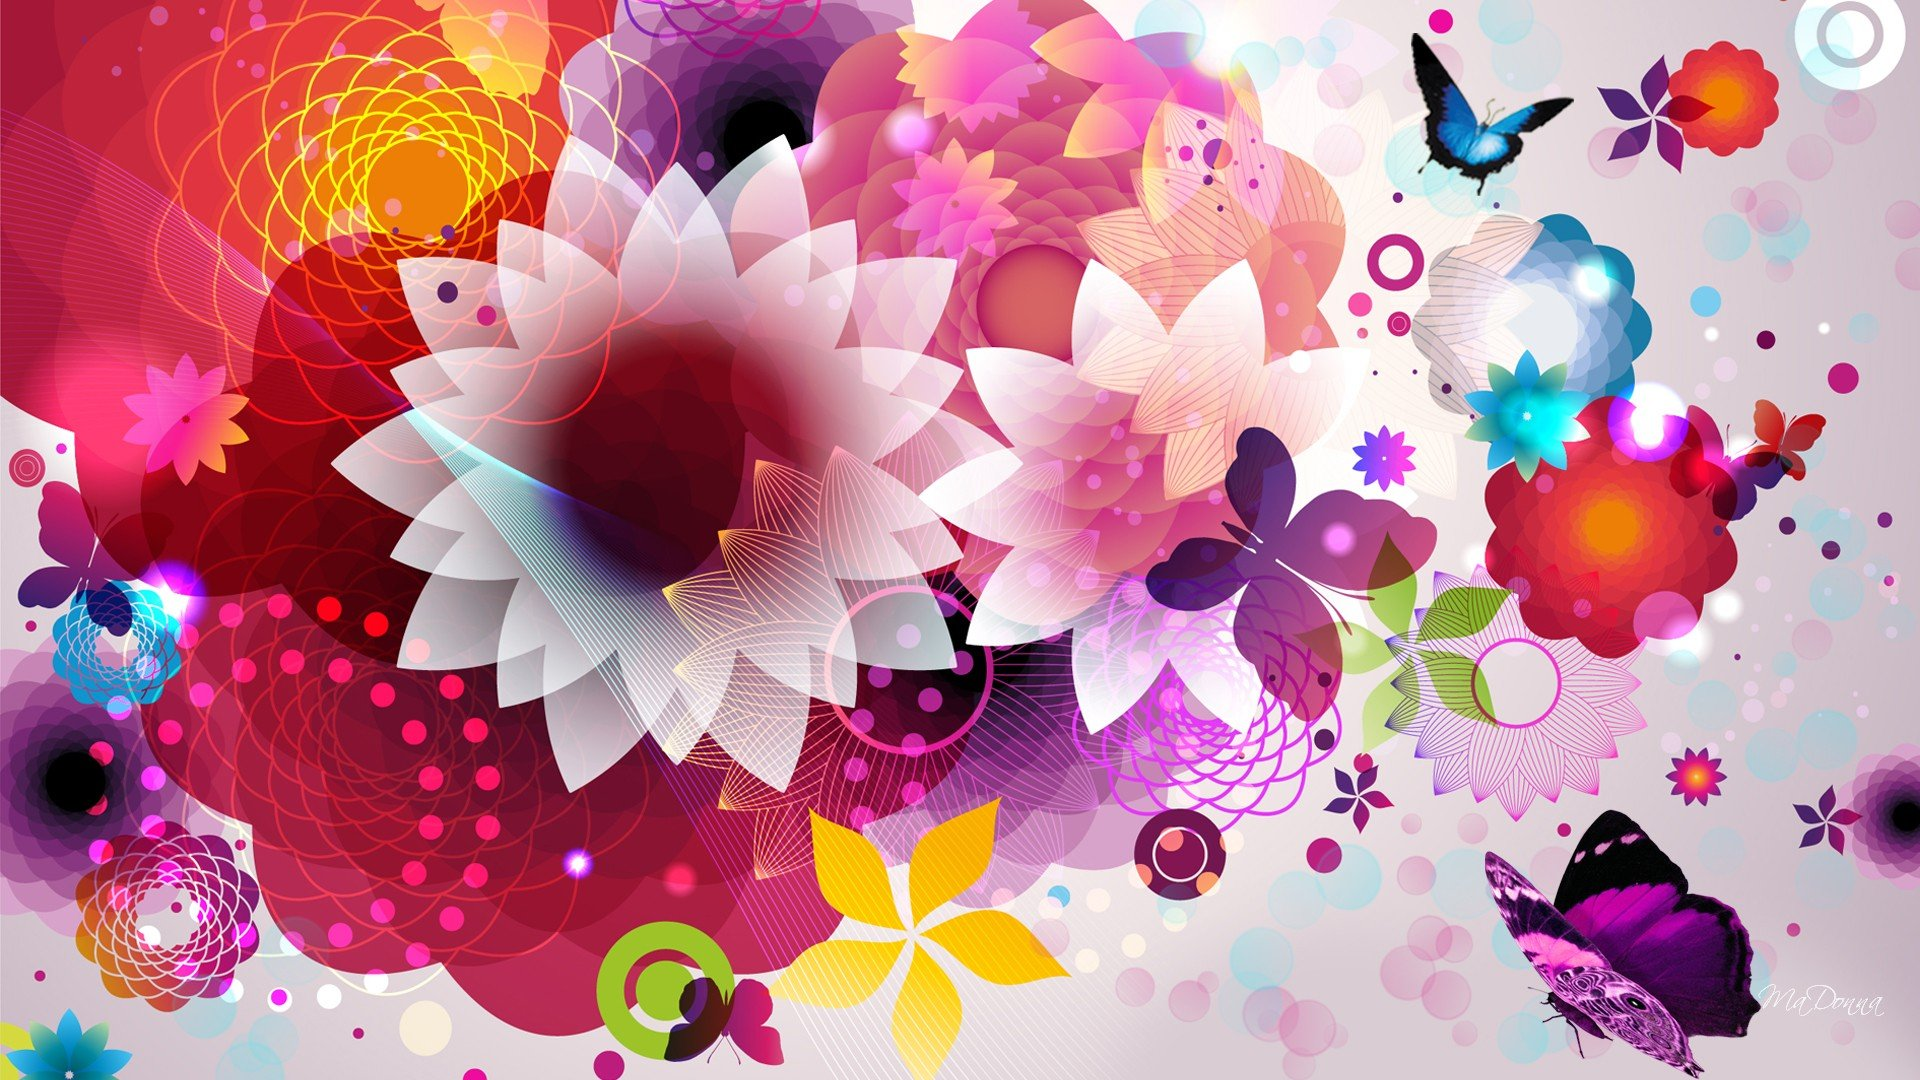 flower power tv wallpaper - photo #11